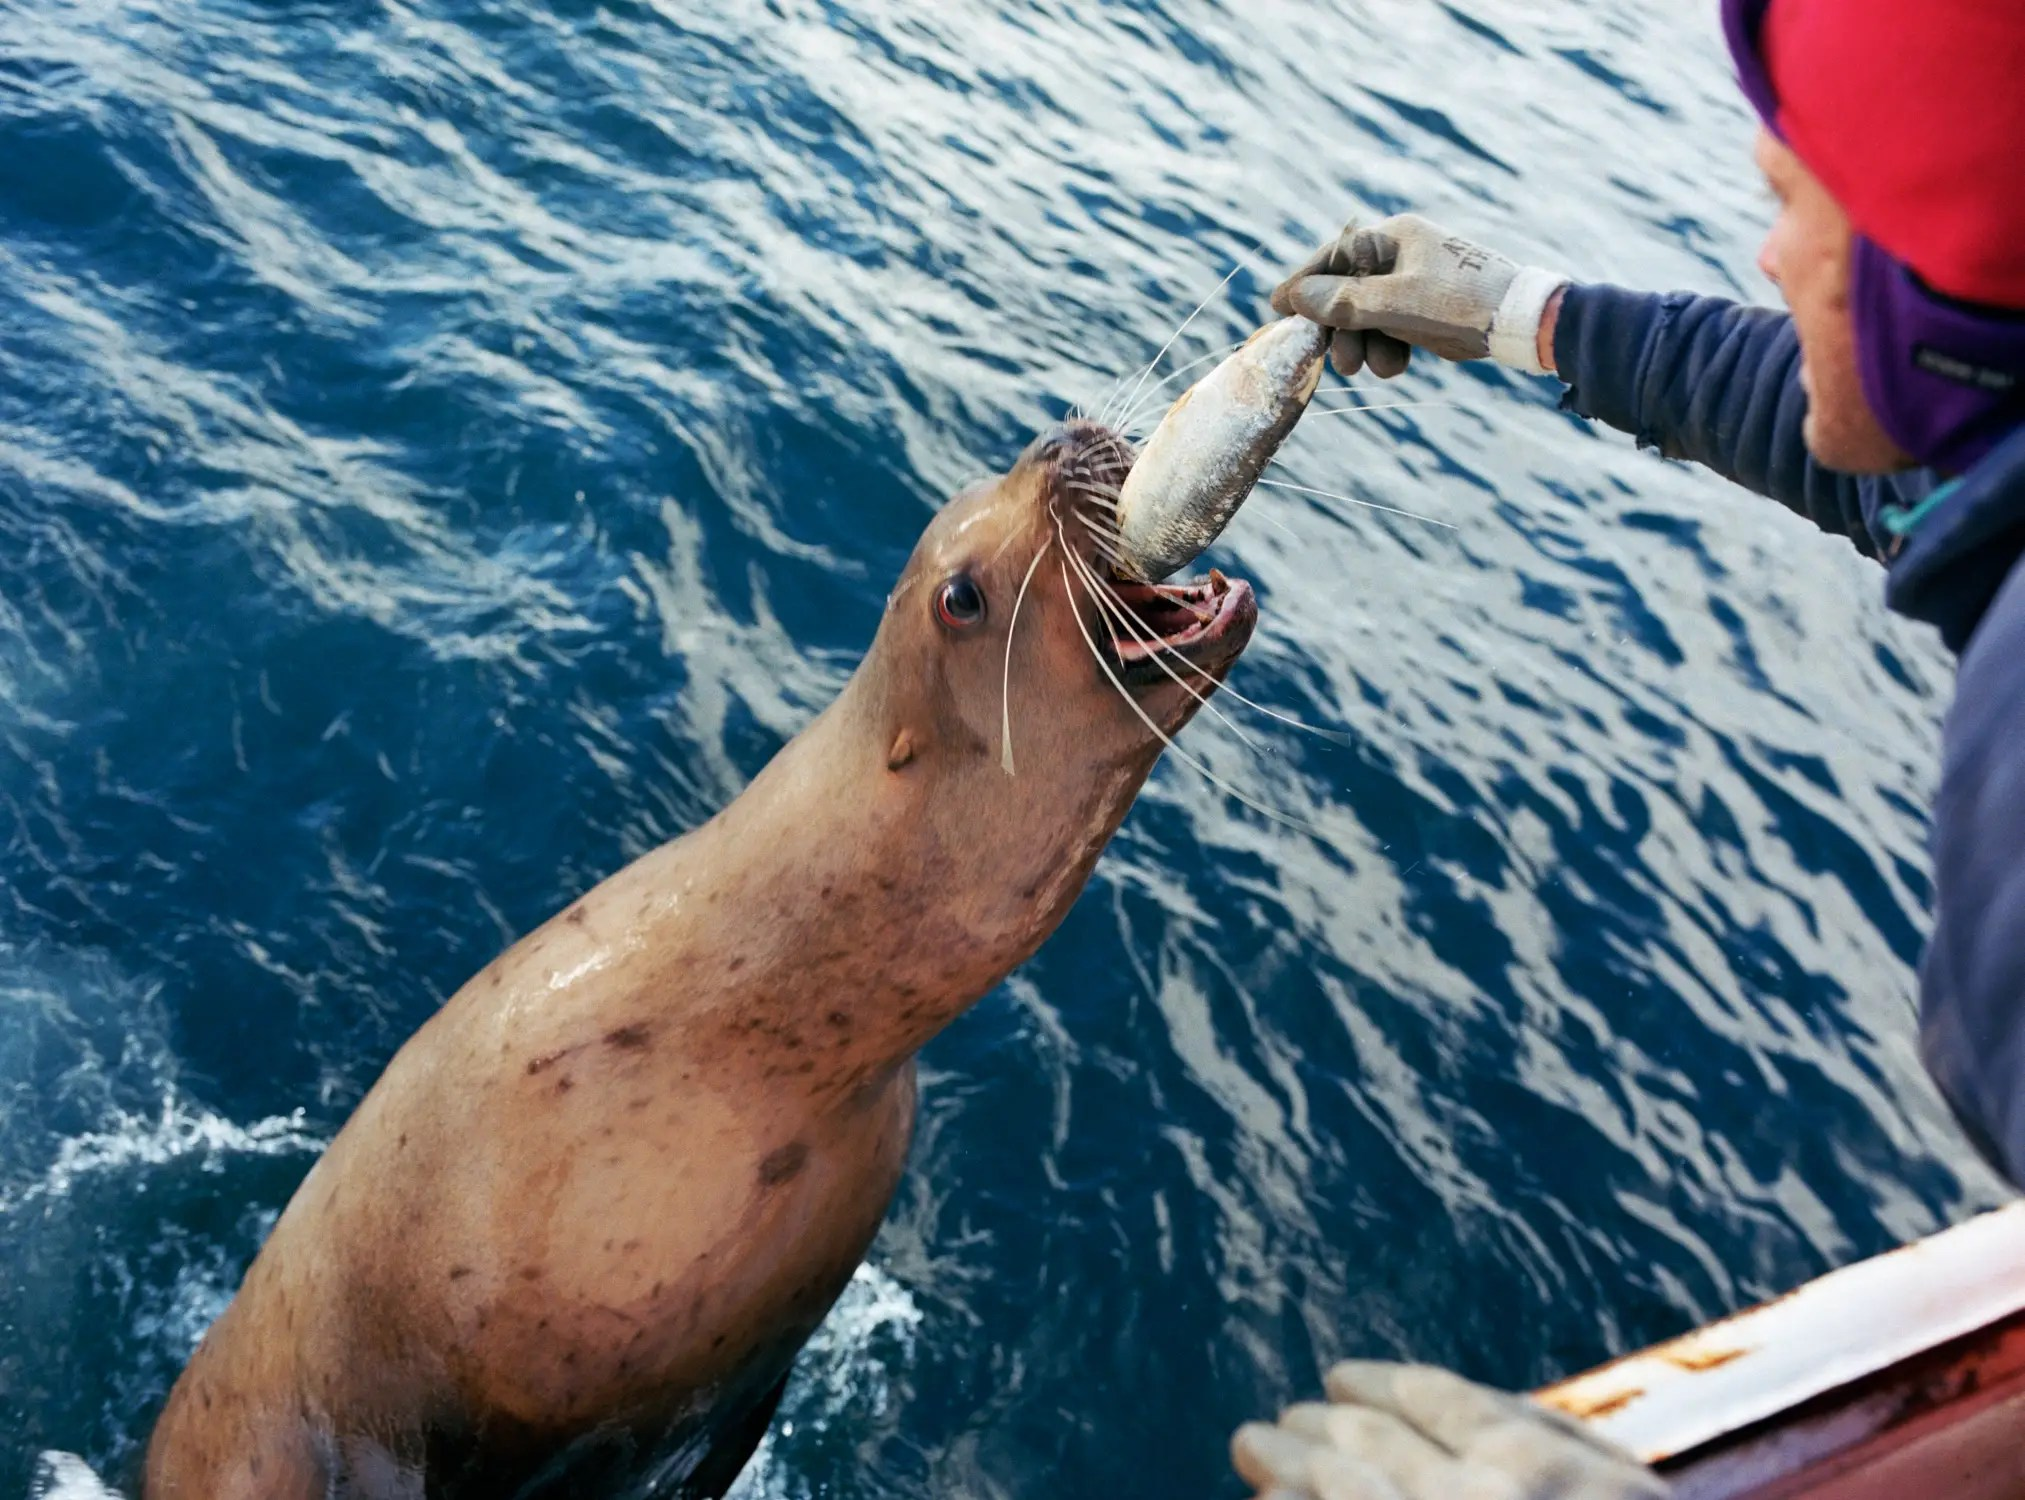 Before heading up to Alaska, the ship loads up with 3 months worth of food. Even so, it's hardly necessary. The ship's cook is constantly steaming fresh crab legs and seafood caught during the day. The hard labor of fishing requires a diet heavy in fat, protein, and omega-3s. Here, a sea lion gets a bite of the grub.